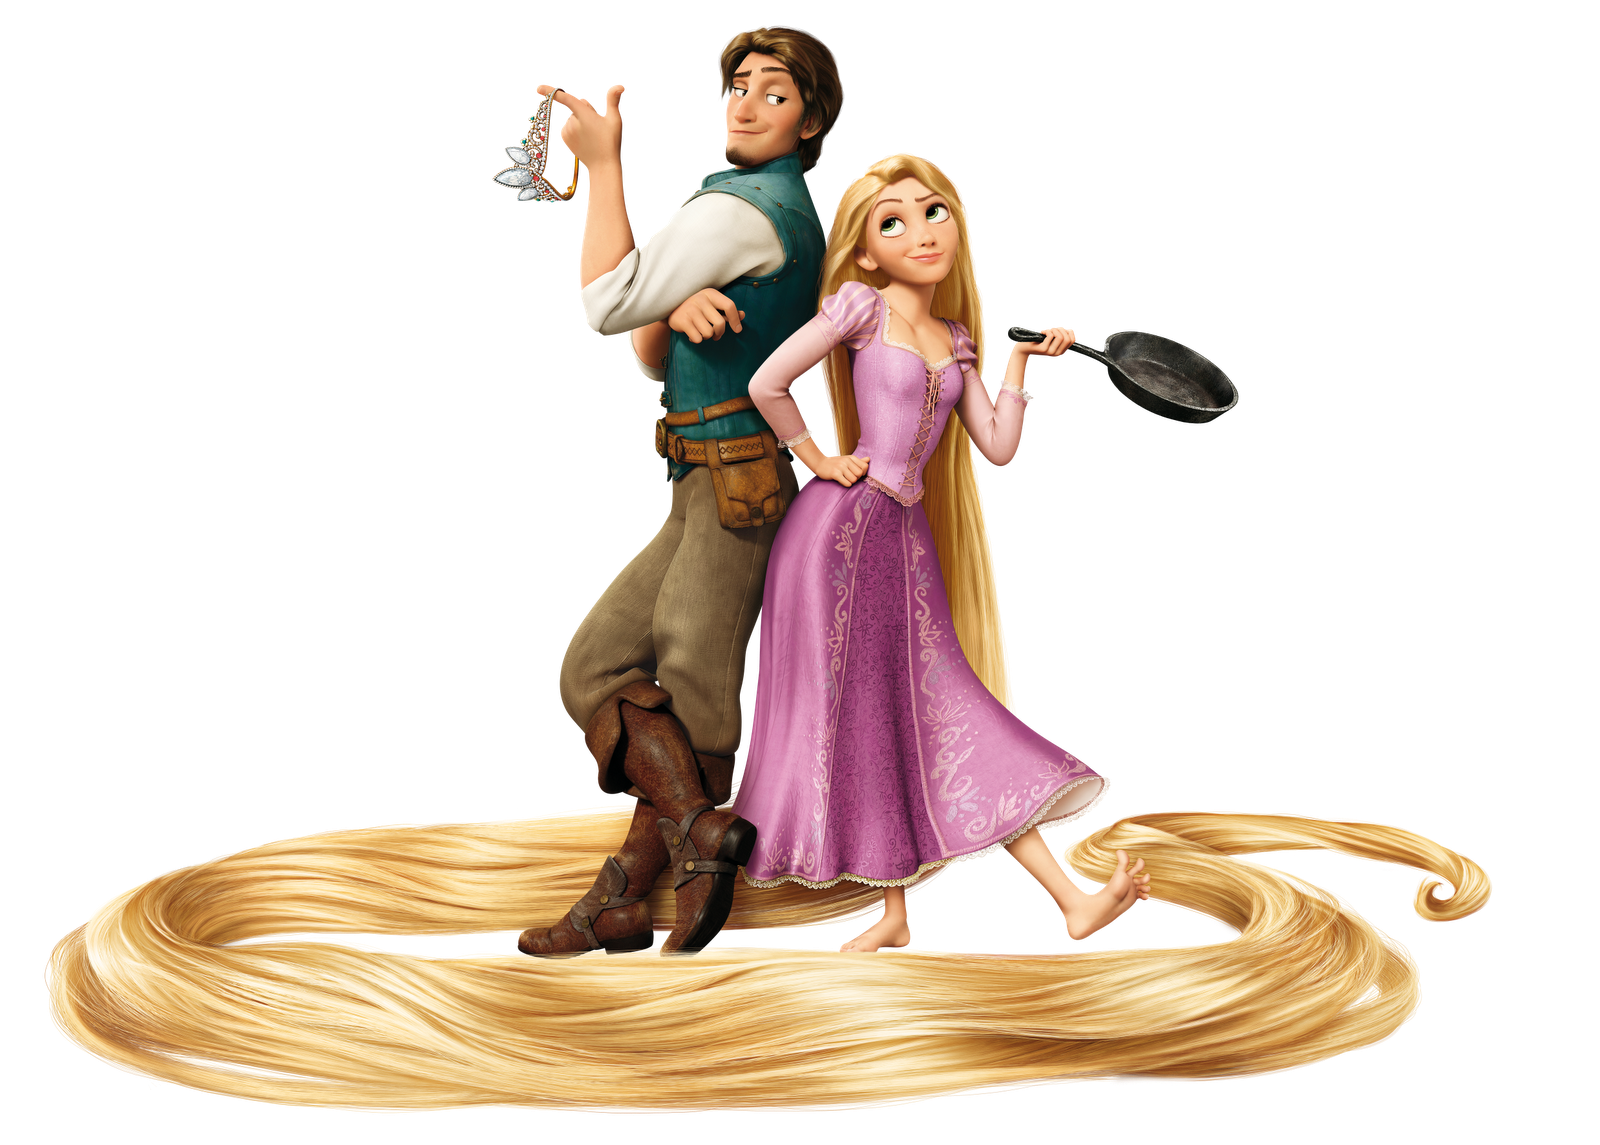 rapunzel clipart tangled movie #140466117